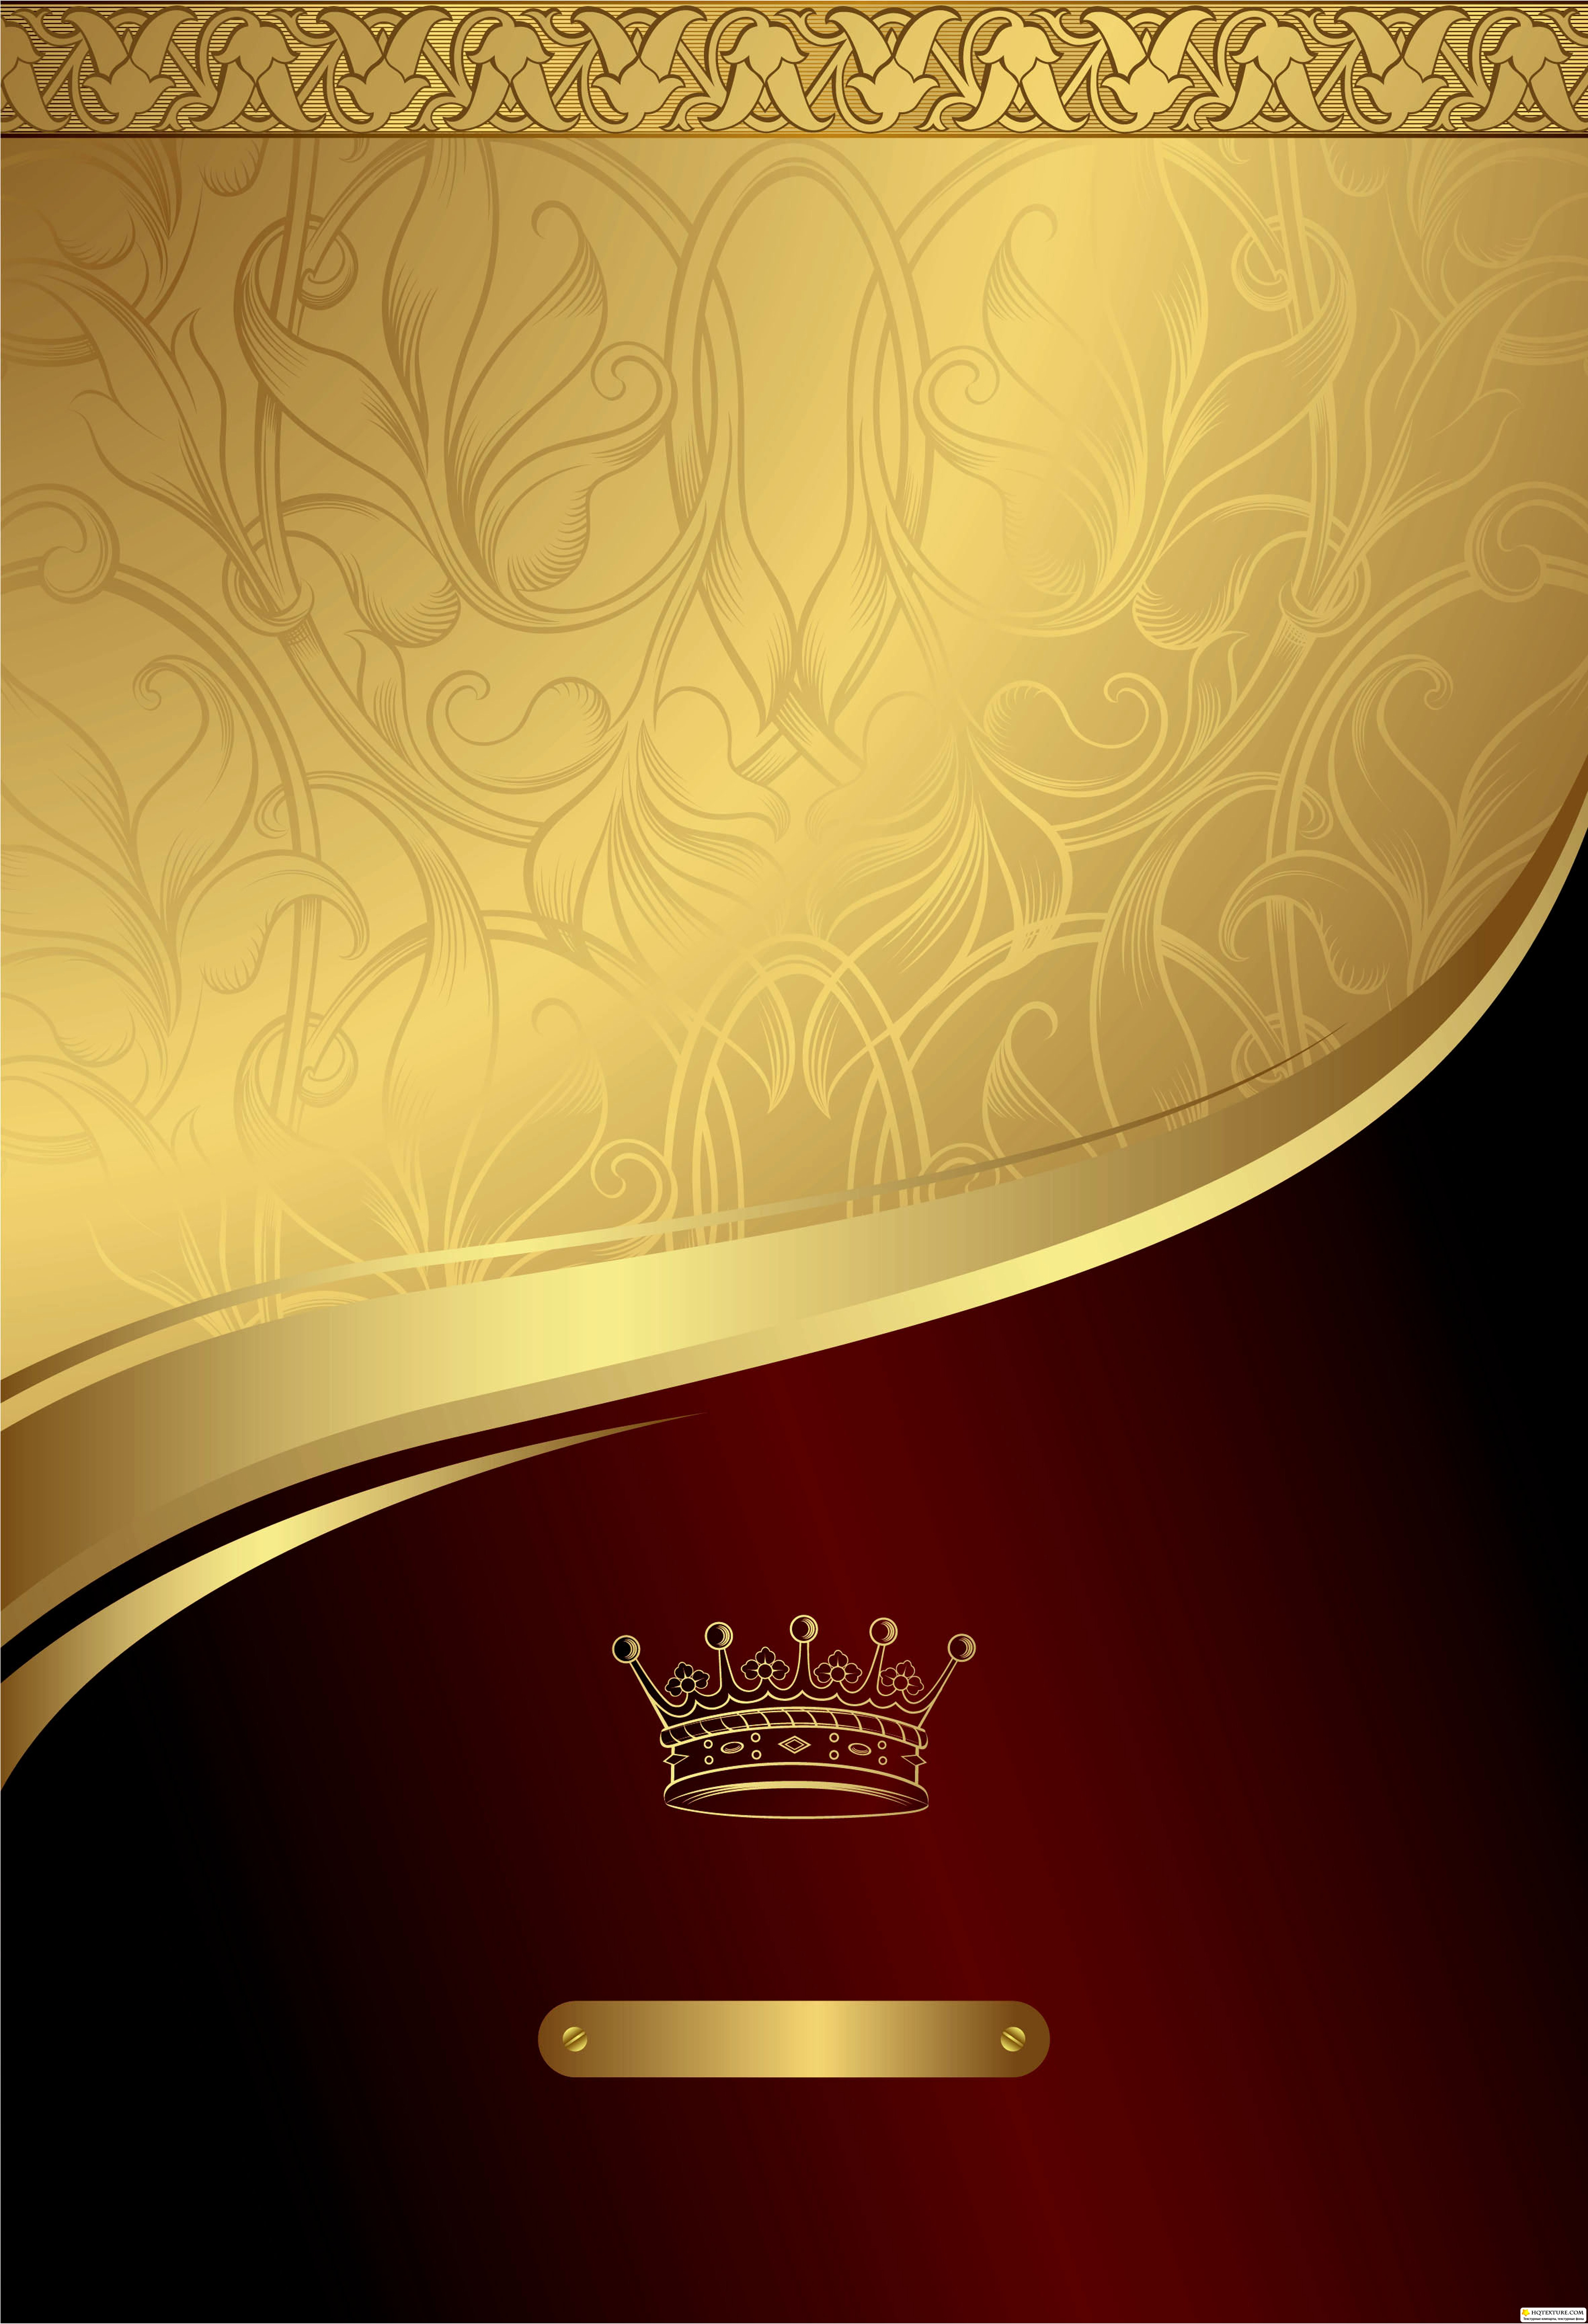 Stock: Gold and Red Floral Royal Background » Векторные ...